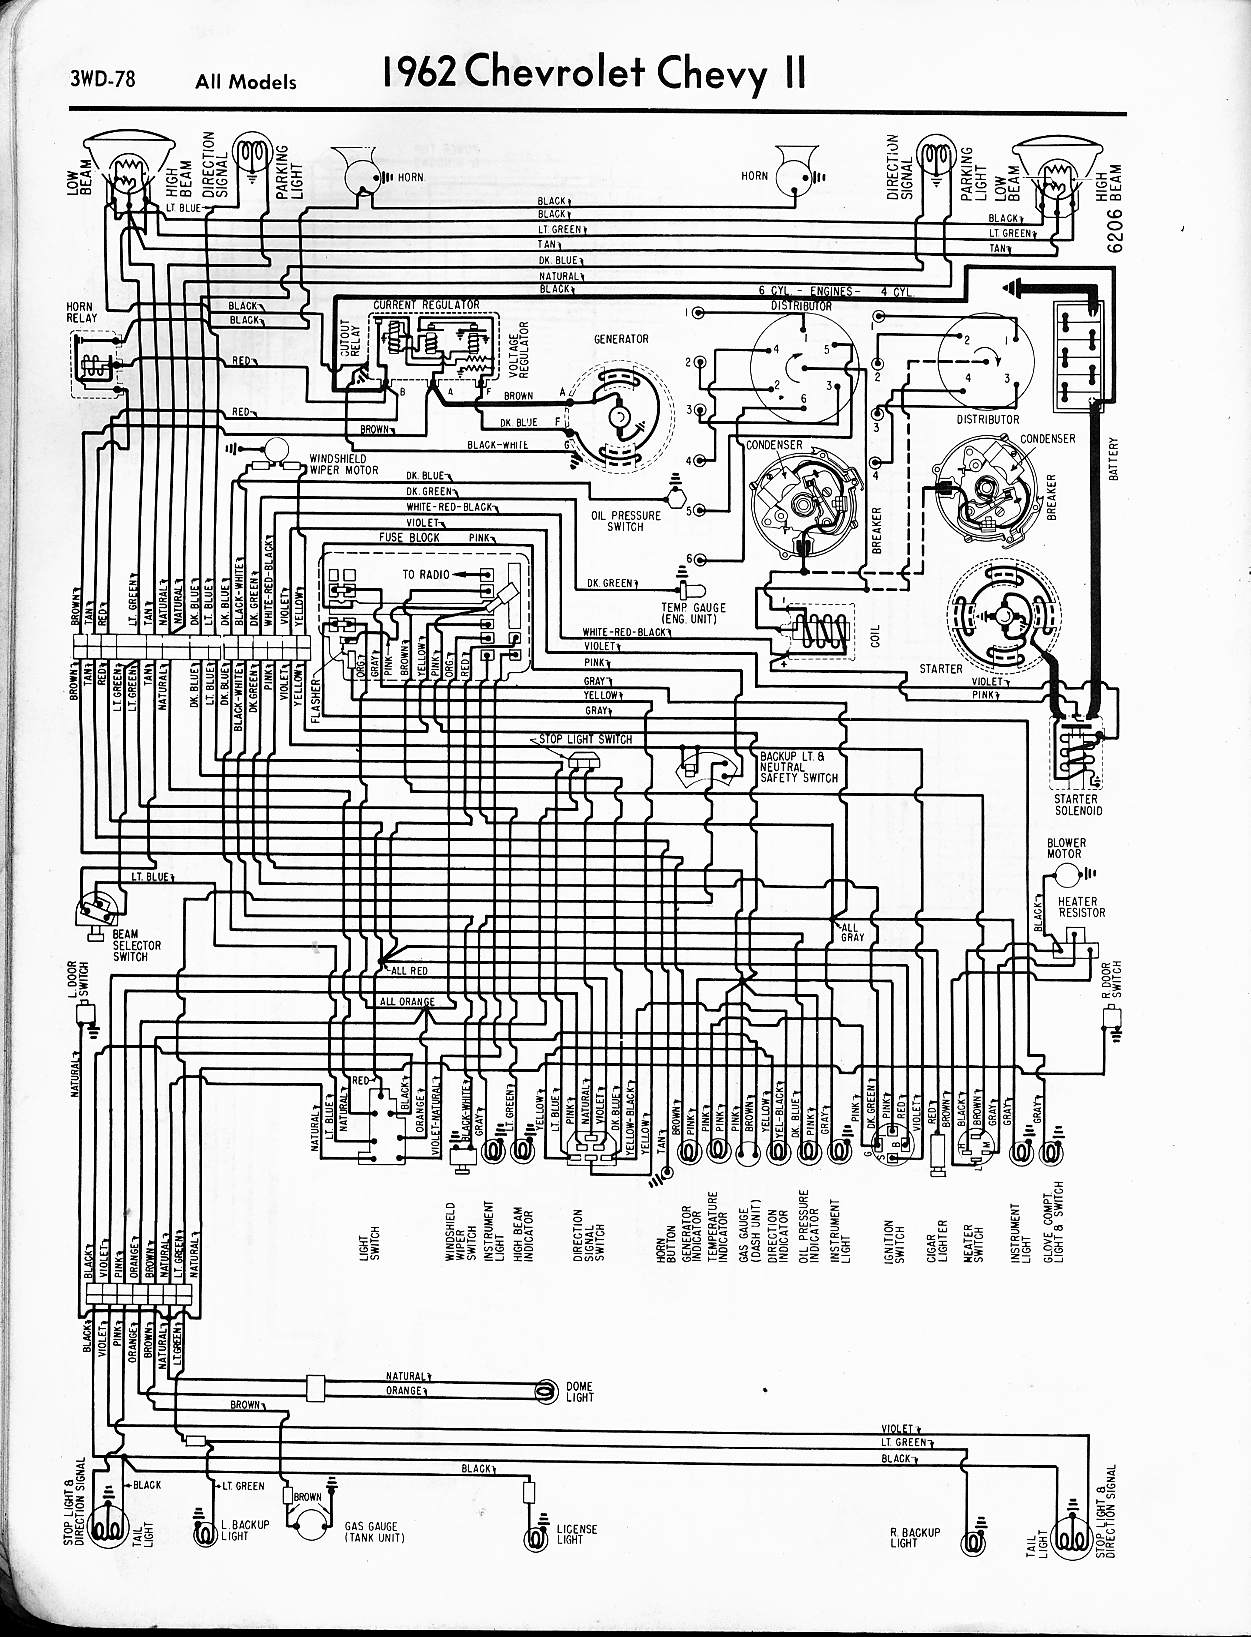 914 Wiring Diagram Wiper Motor Get Free Image About For A 280z Head Lights Library